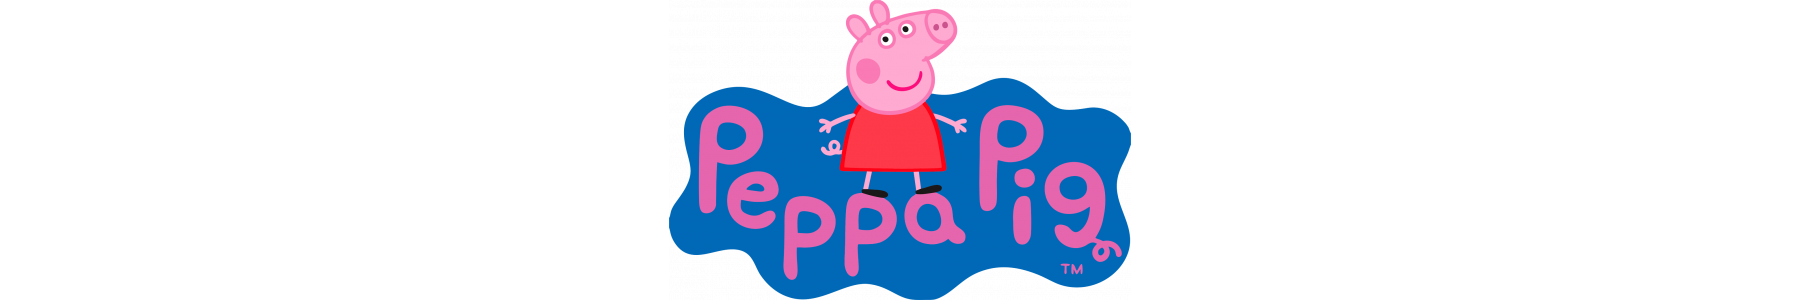 Articole party Peppa Pig